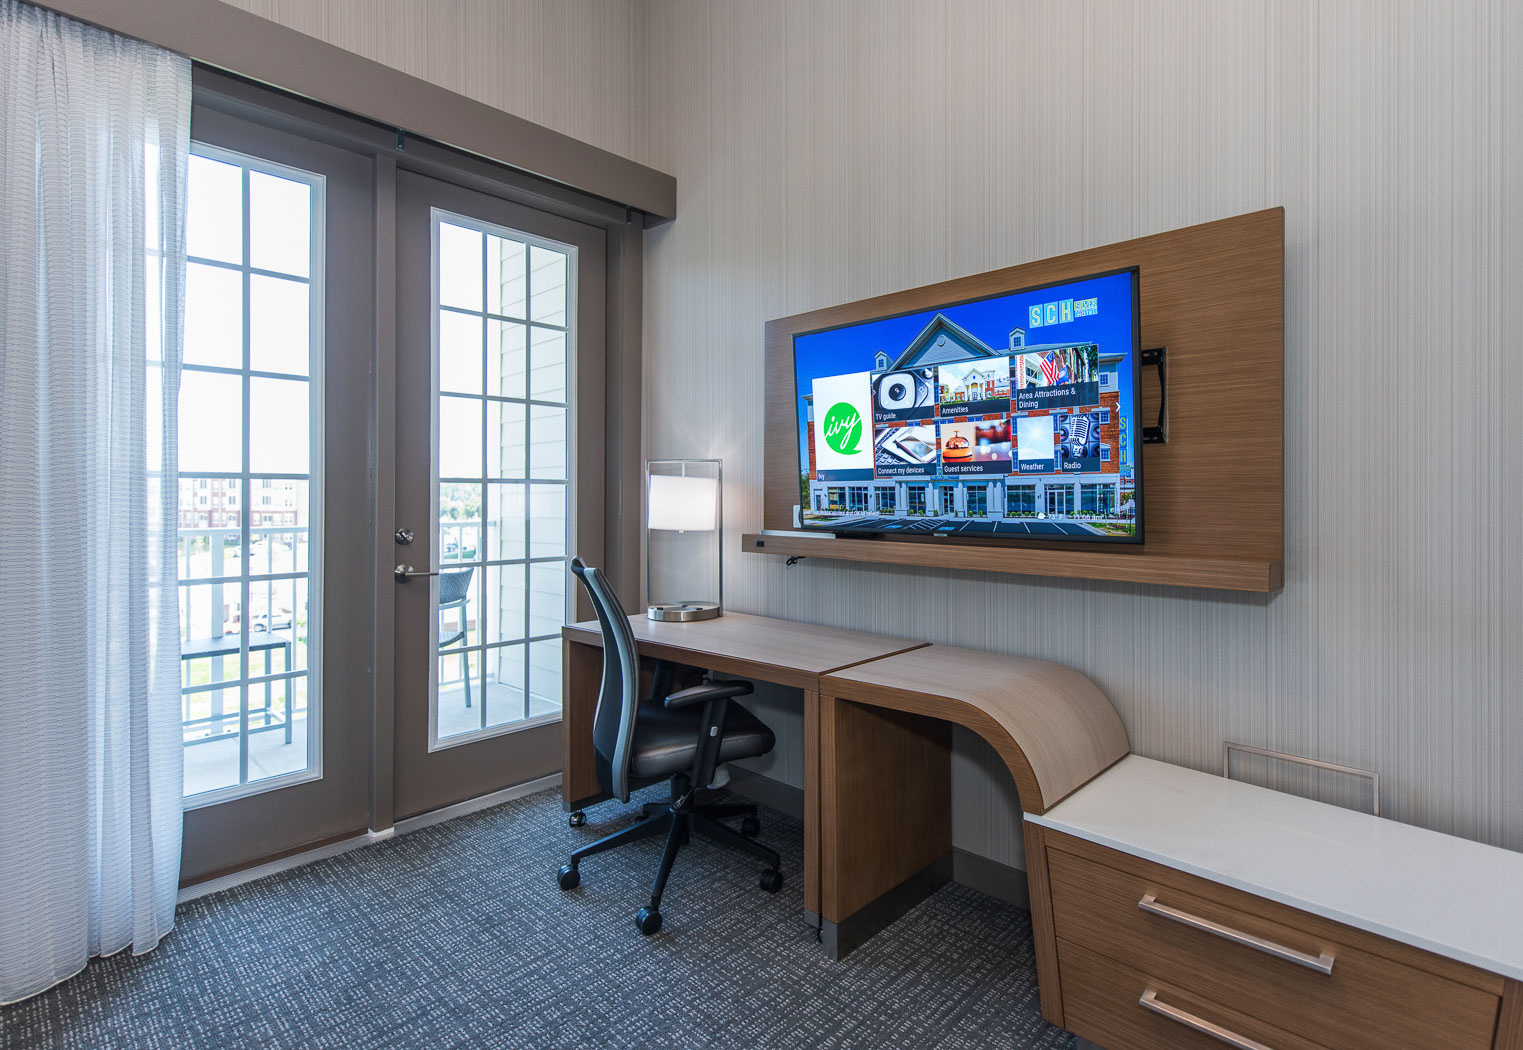 TV mounted on the wall with a small desk and chair underneath along with some drawers. The TV and desk are near the balcony door.